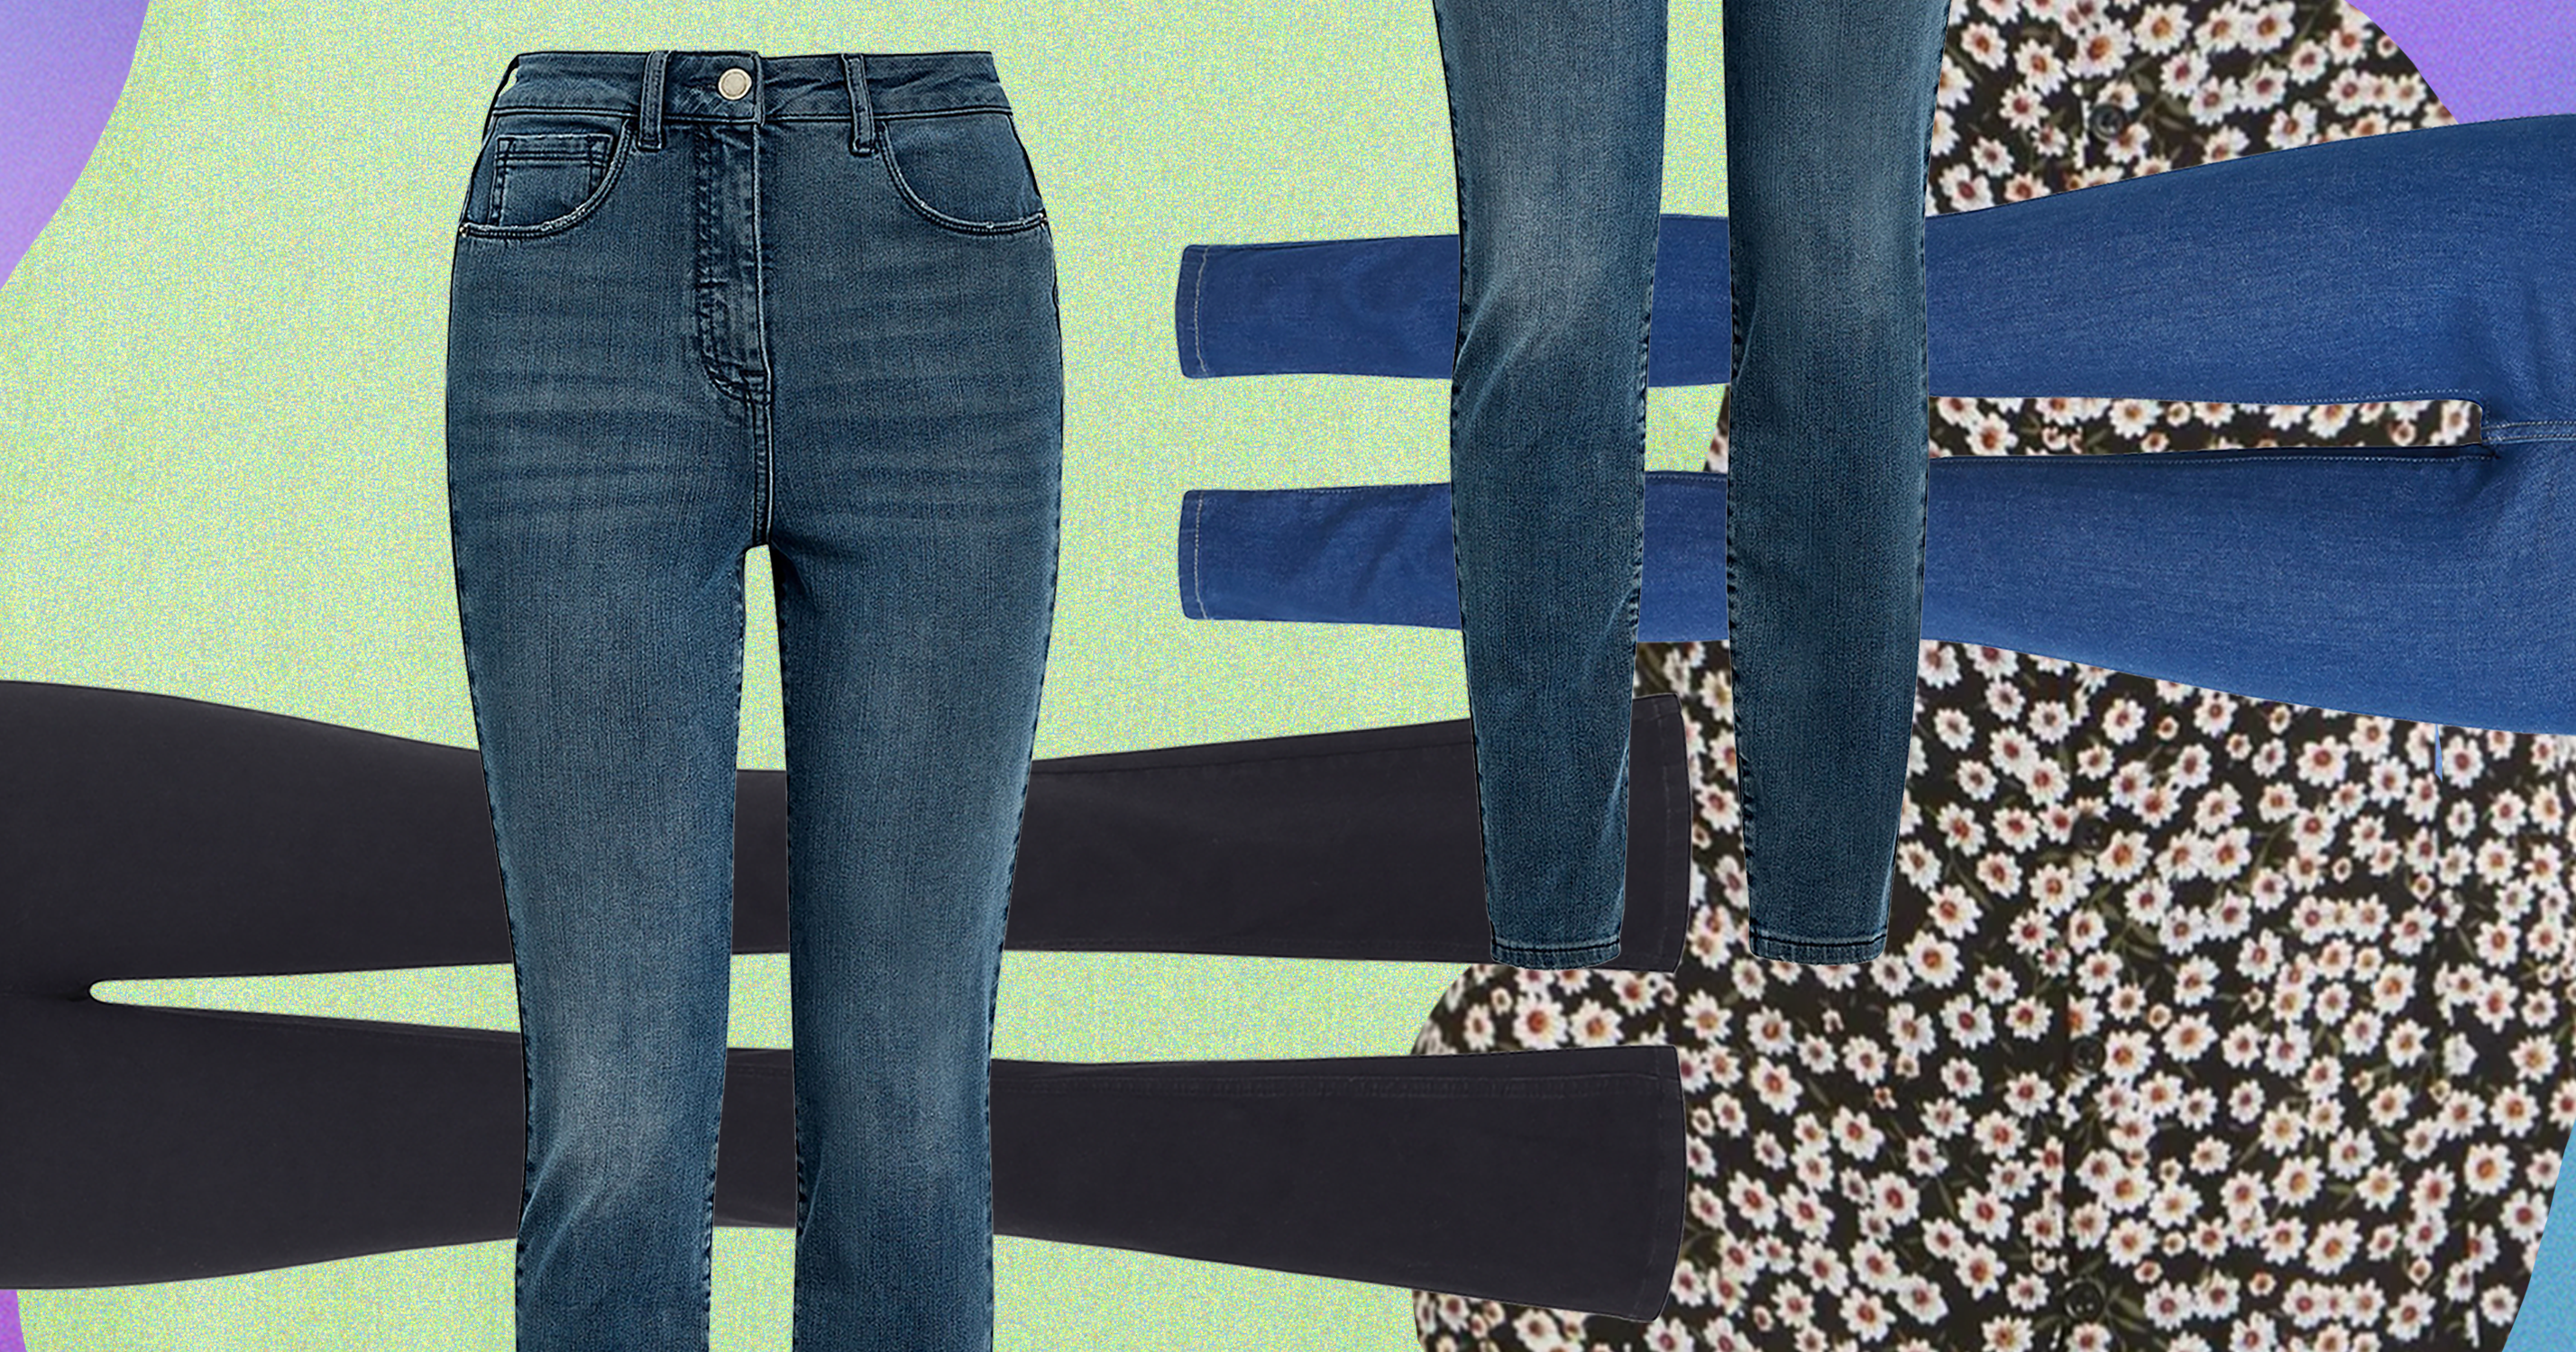 5 Pairs Of Jeans For When The Weather Can't Make Up Its Mind